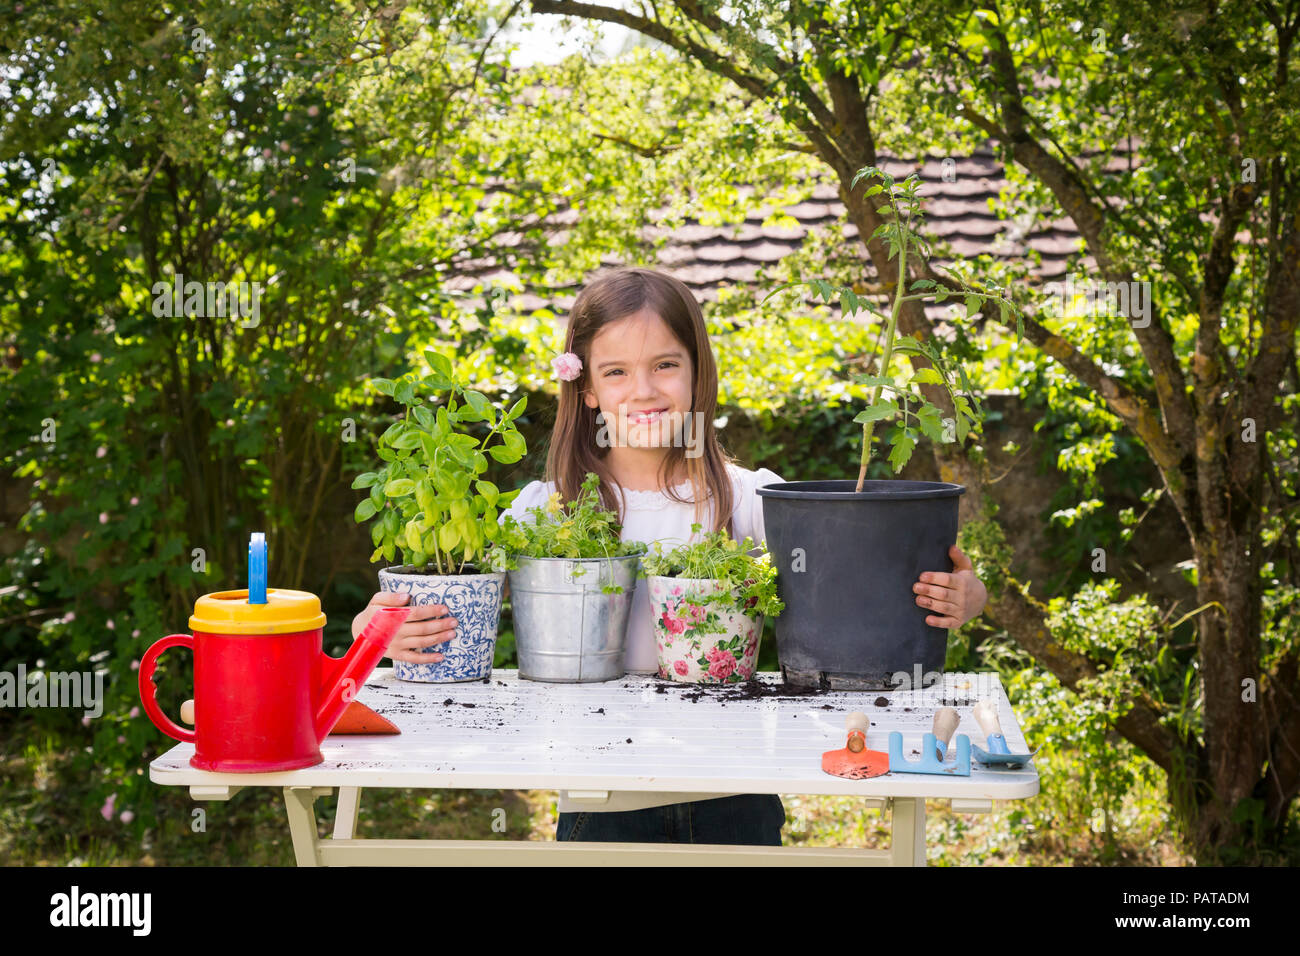 Portrait of proud little girl with potted spice plants on table in the garden - Stock Image